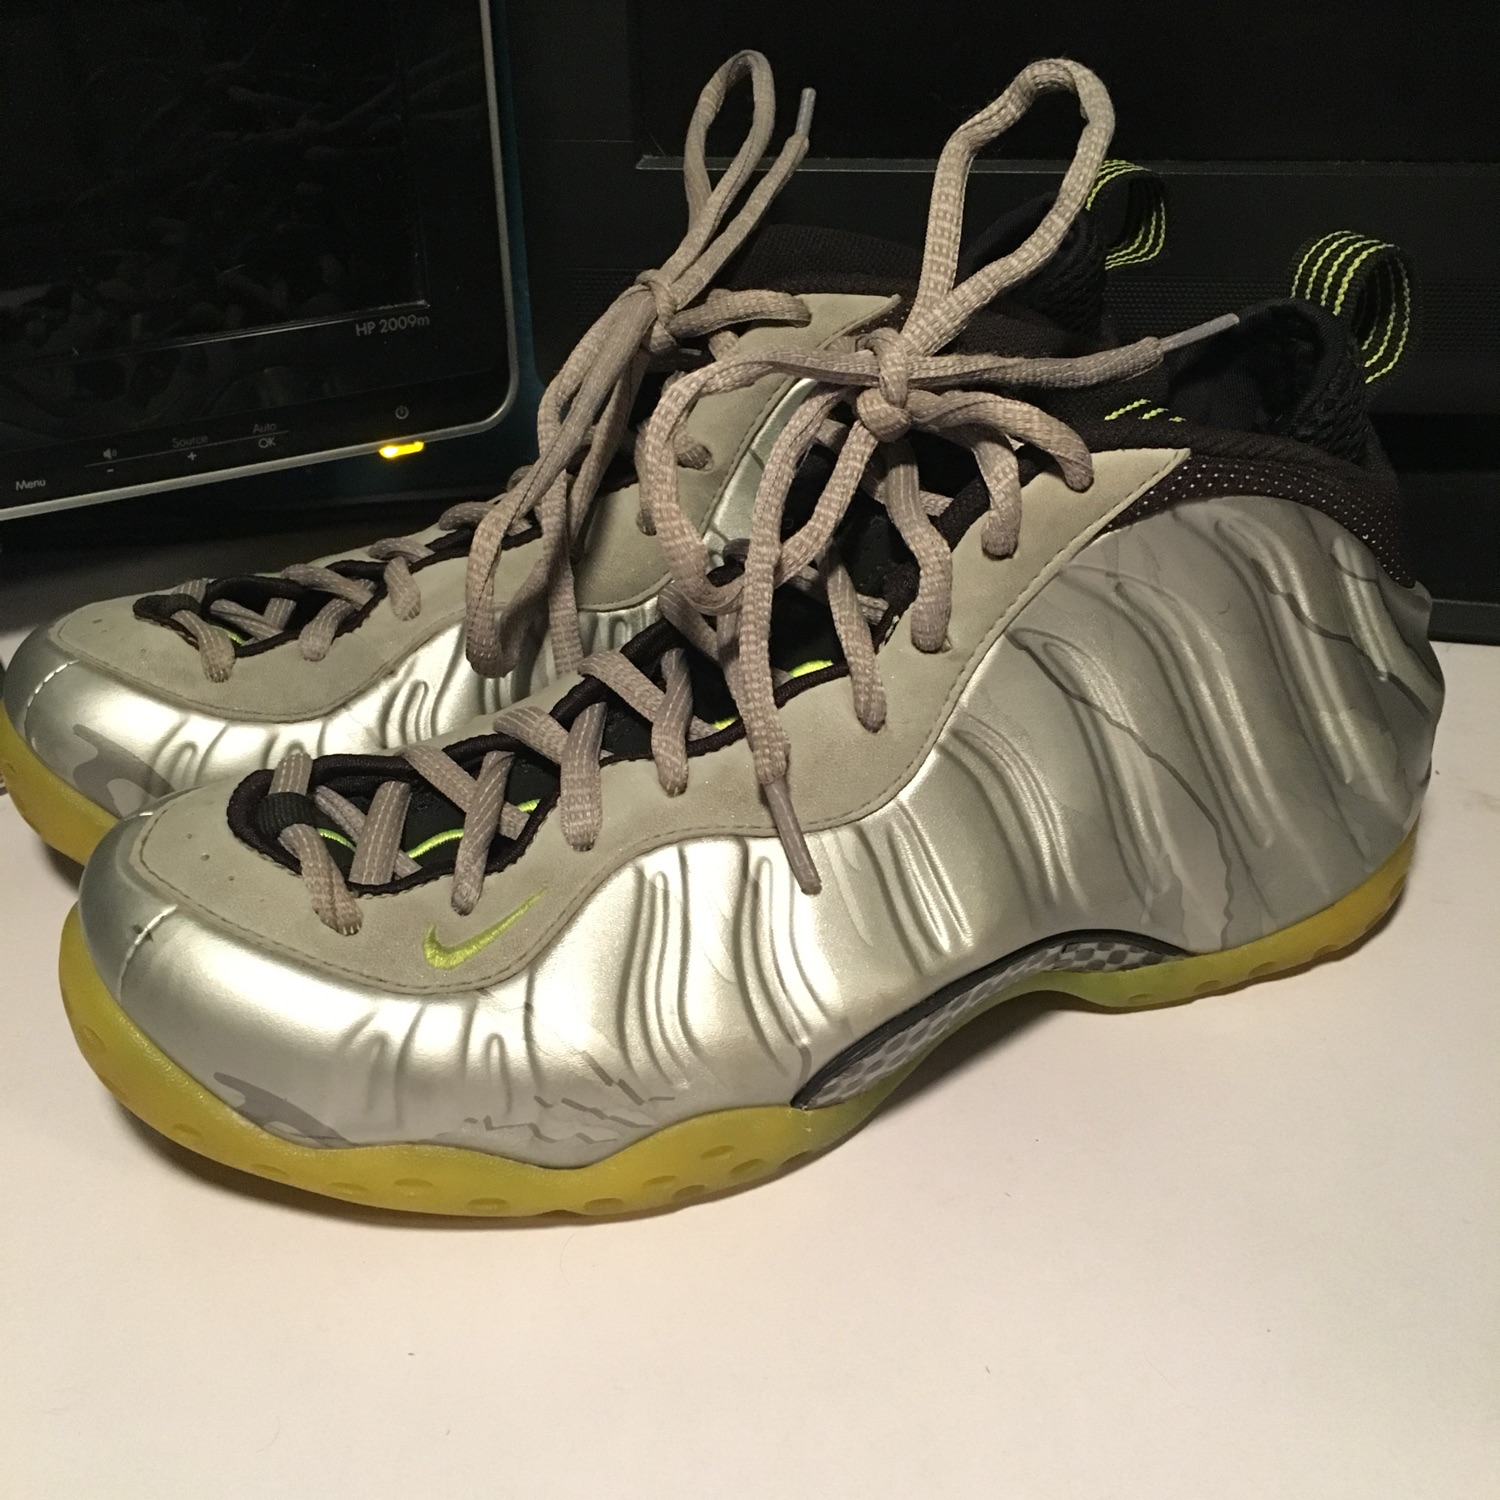 brand new 16e03 3412b Nike Air Foamposite 3M Volt / Metallic